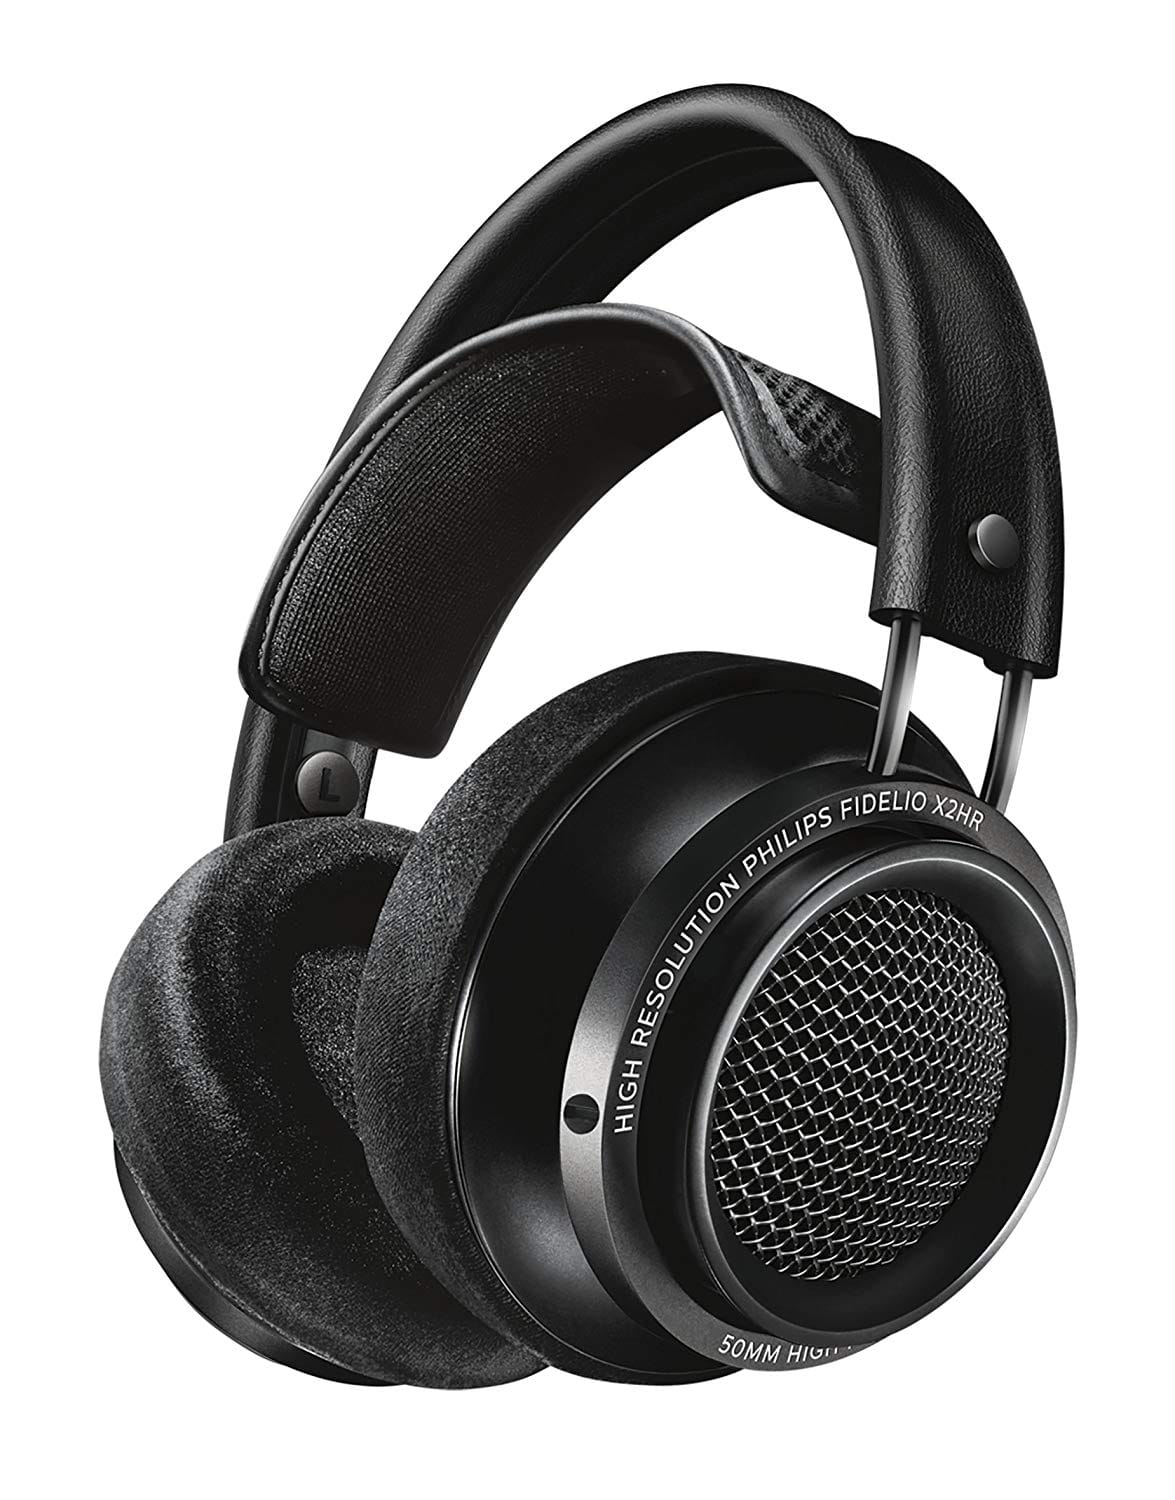 Philips Fidelio X2HR Over-Ear Wired Headphones (Black) $140 + Free Shipping